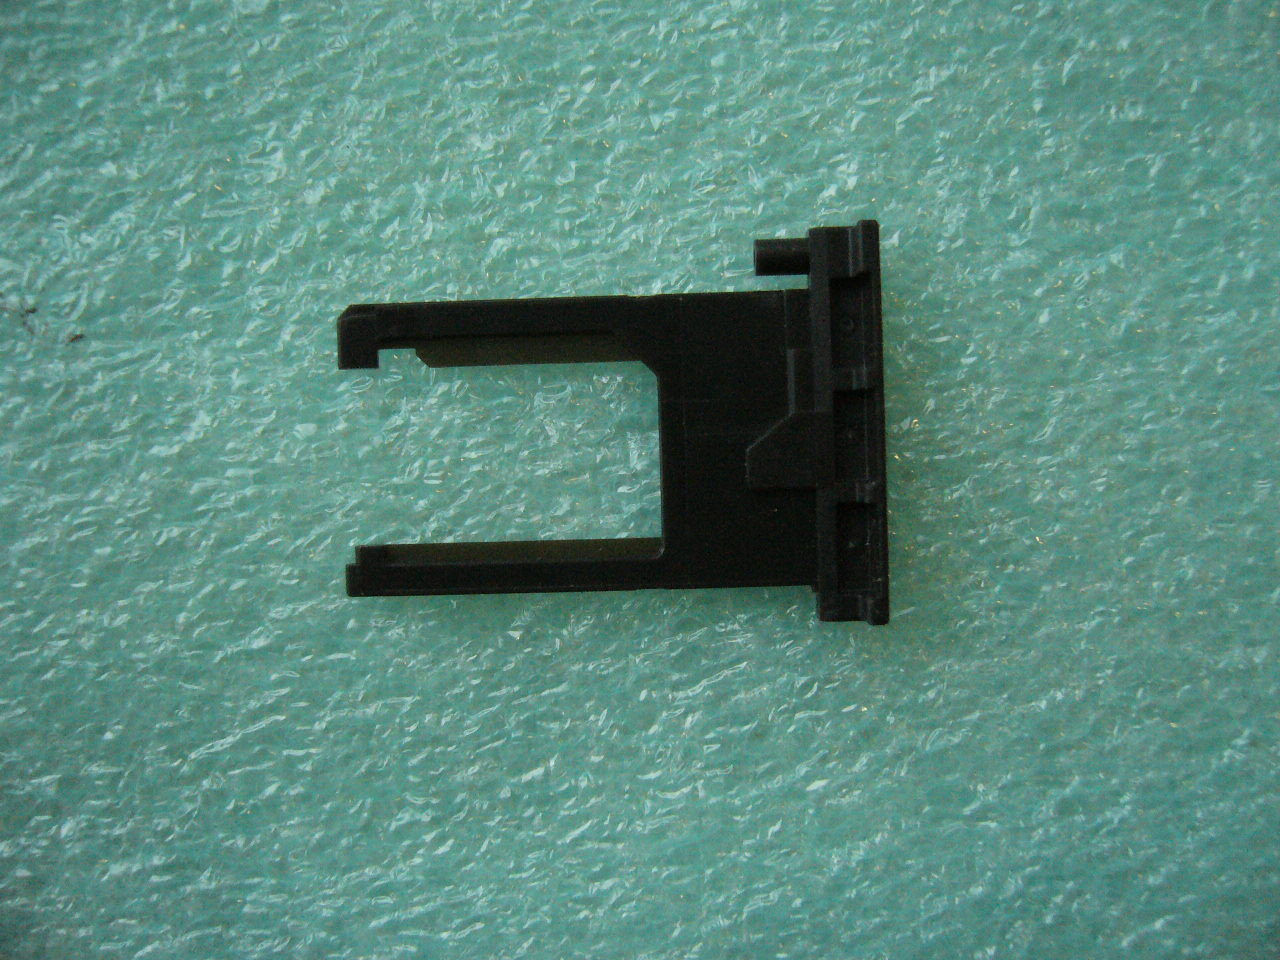 QTY 1x SIM card Tray or Holder for Lenovo Thinkpad X240, X250